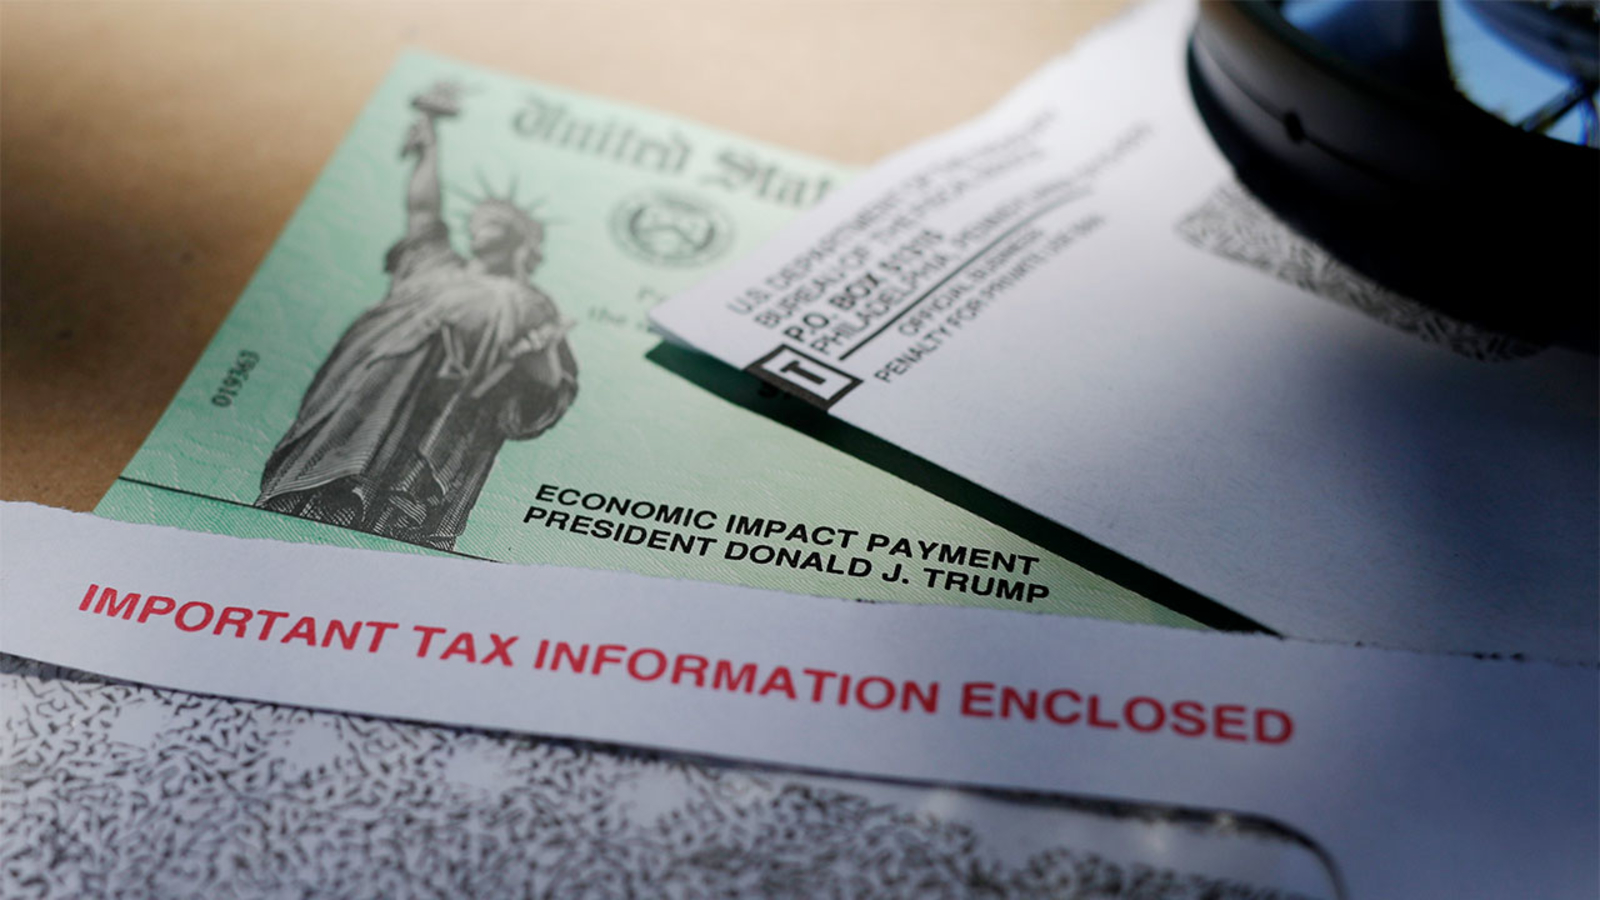 Stimulus Checks Irs Sets Wednesday Deadline For Economic Impact Payment By Direct Deposit